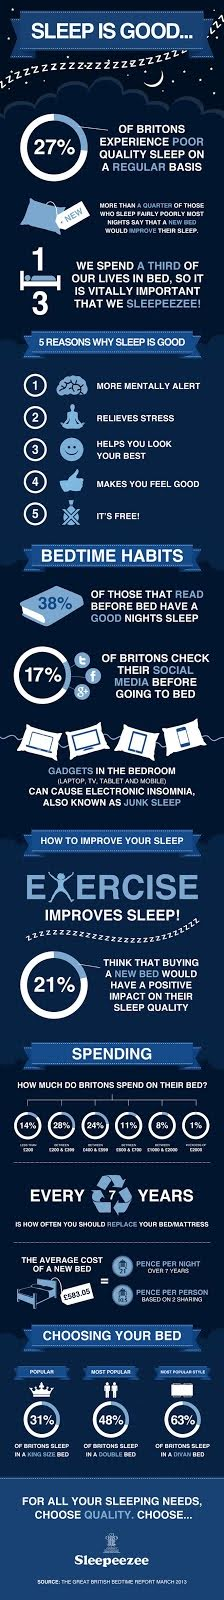 Sleepeezee give an infographic look at how sleep is good for you